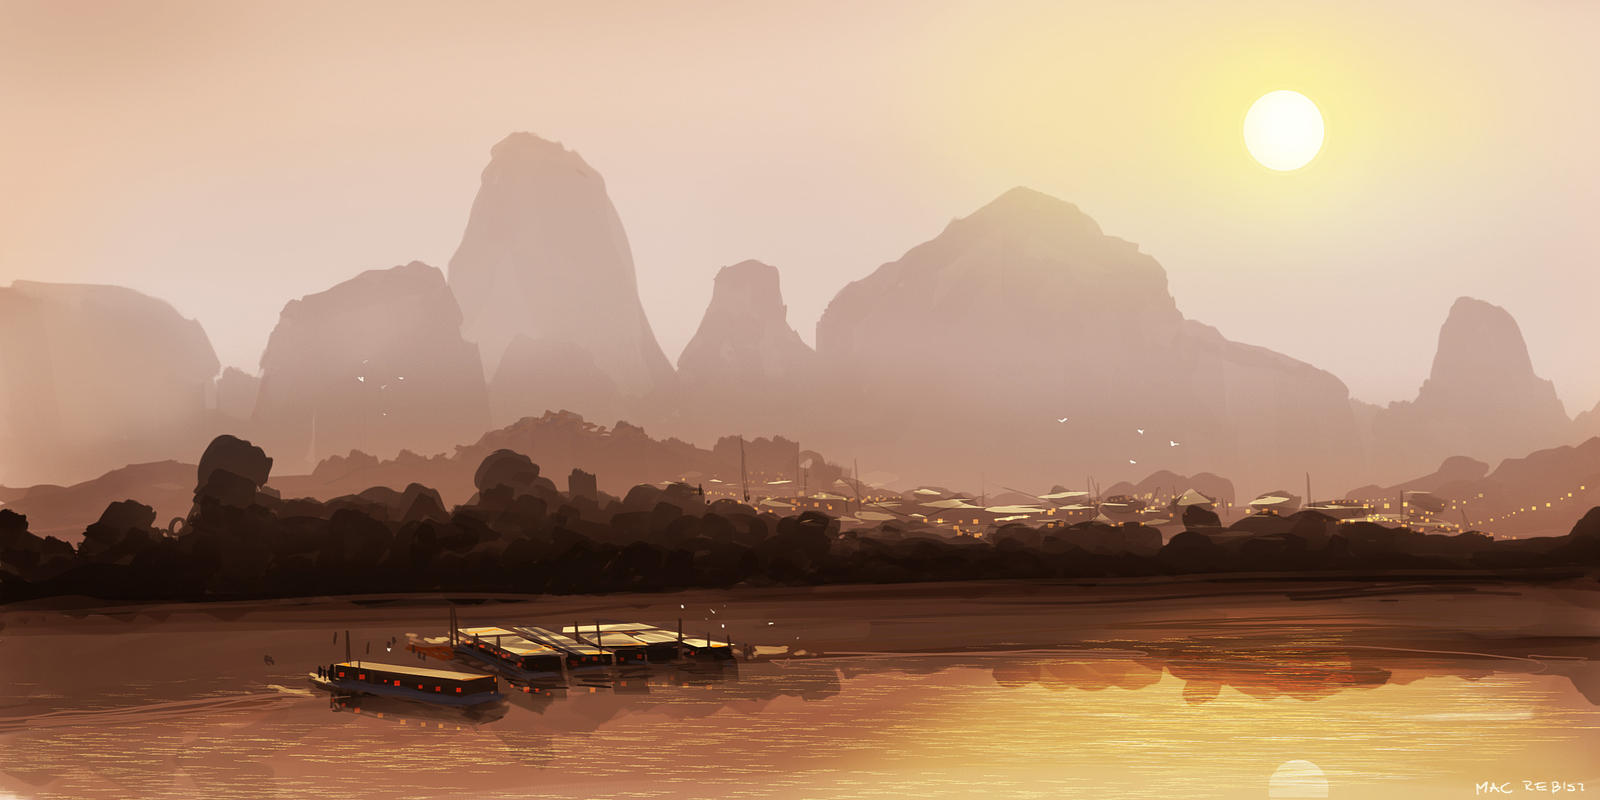 CoffeePainting: Landscape photo study by MacRebisz